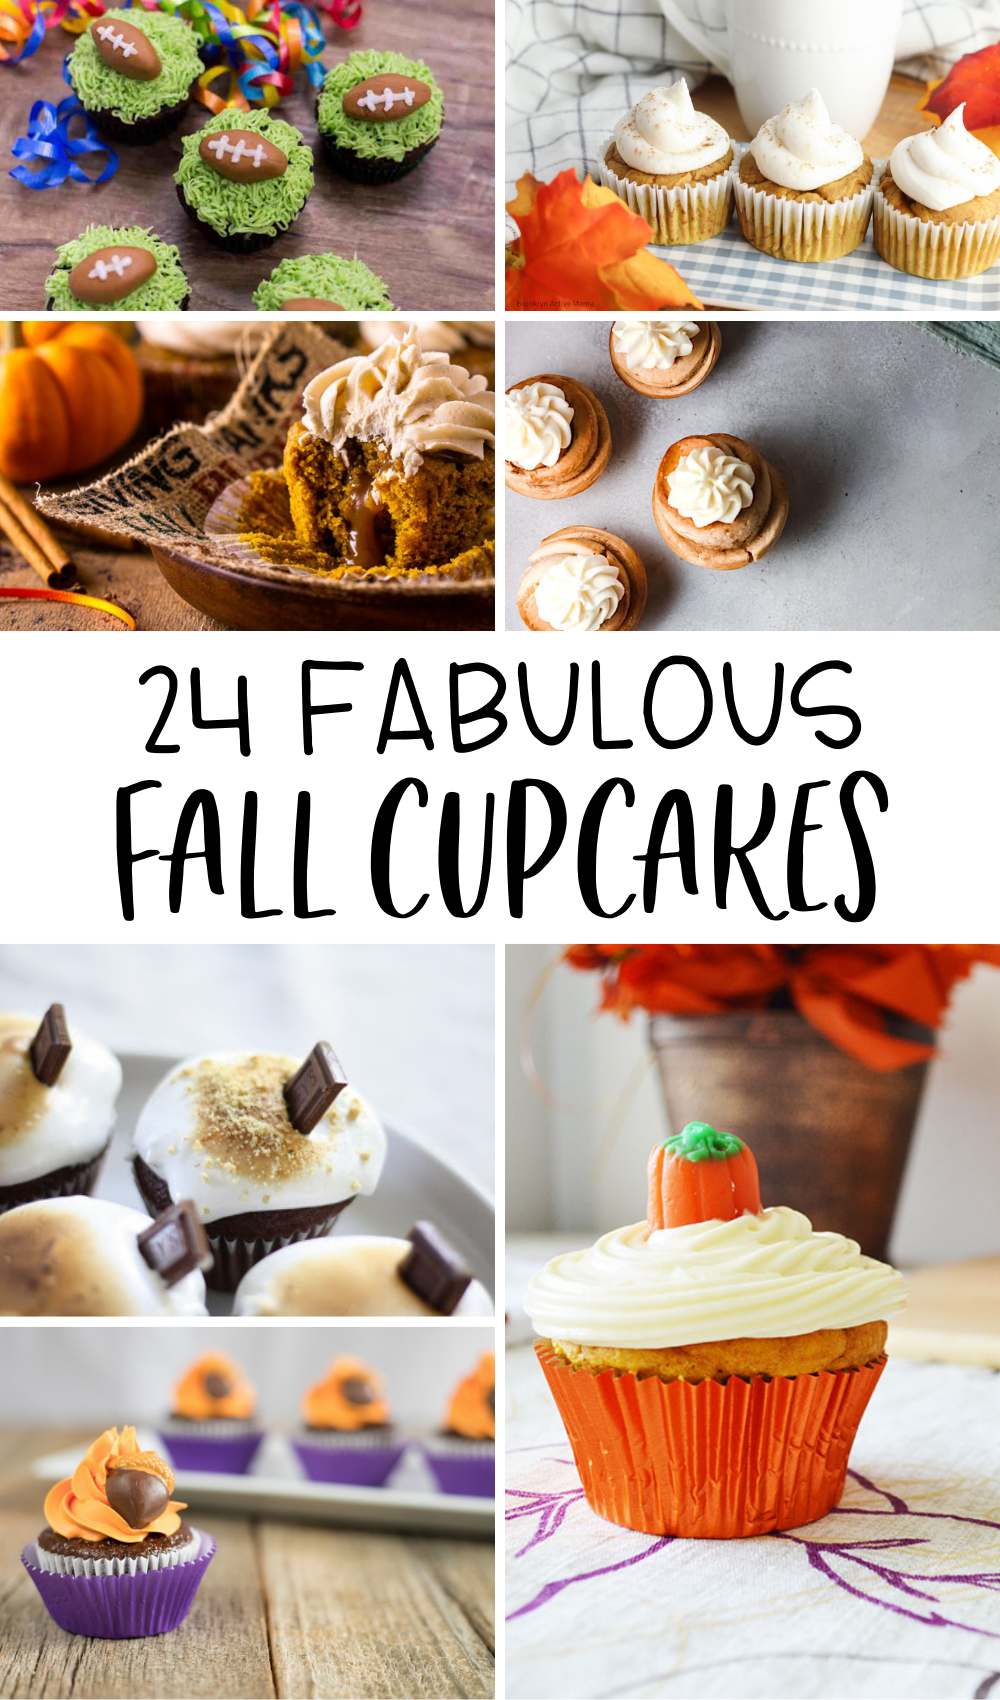 24 fabulous fall cupcakes